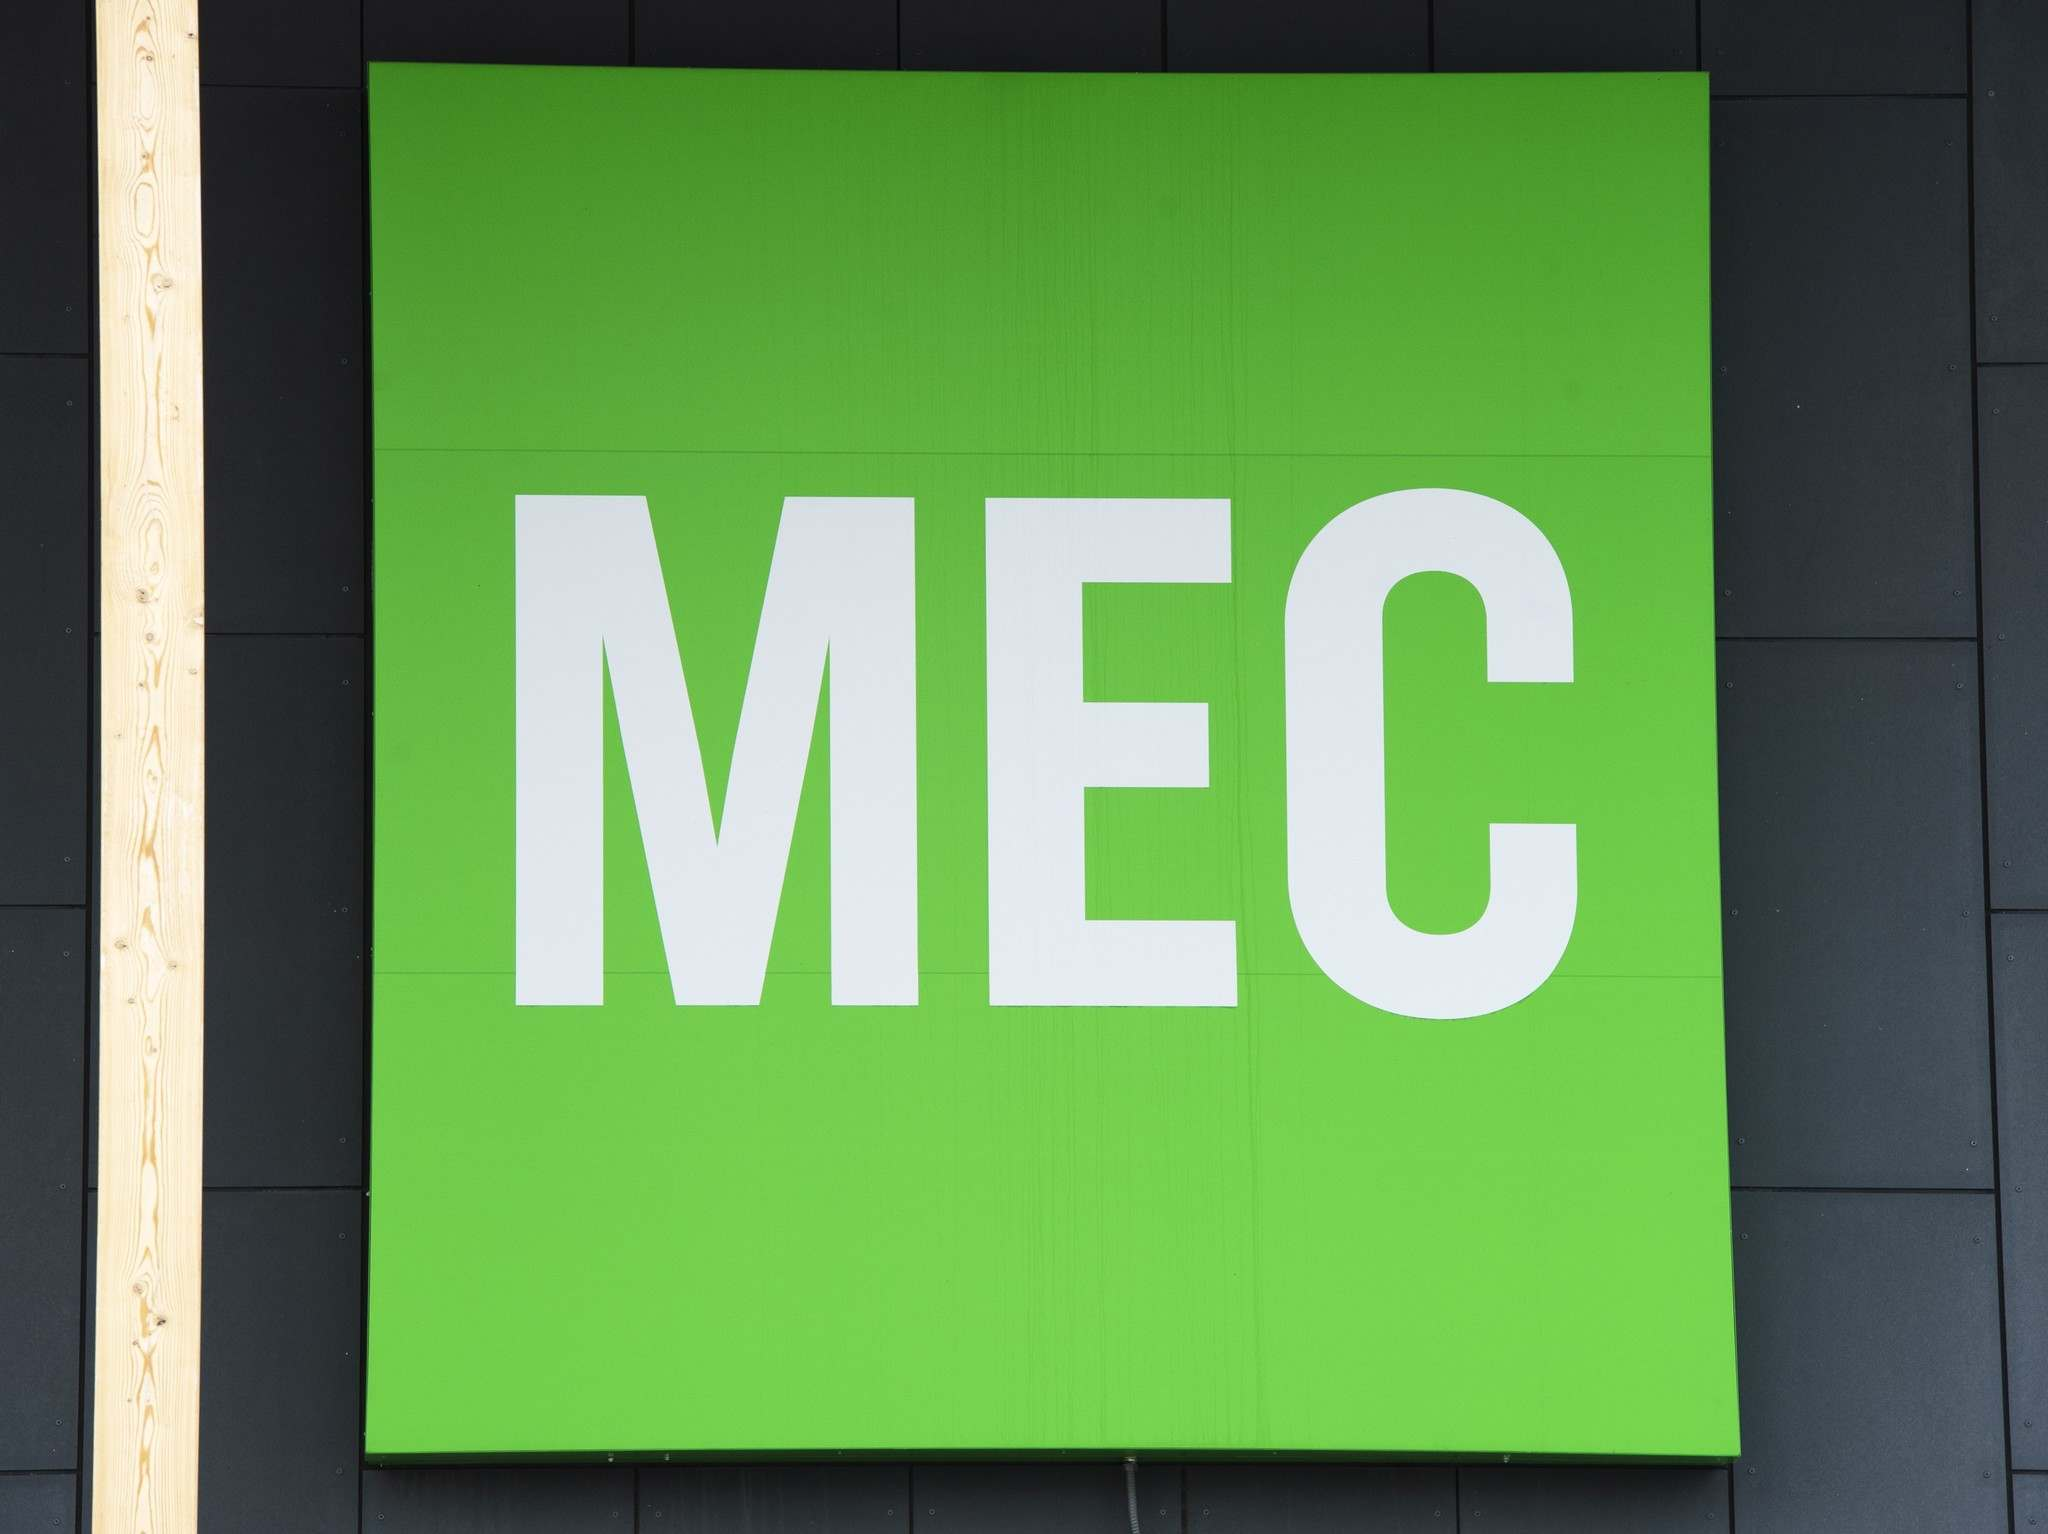 MEC has more than five million members, 22 Canadian stores and more than 2,500 employees, according to the company's 2018/19 reports. (Ryan Remiorz / The Canadian Press)